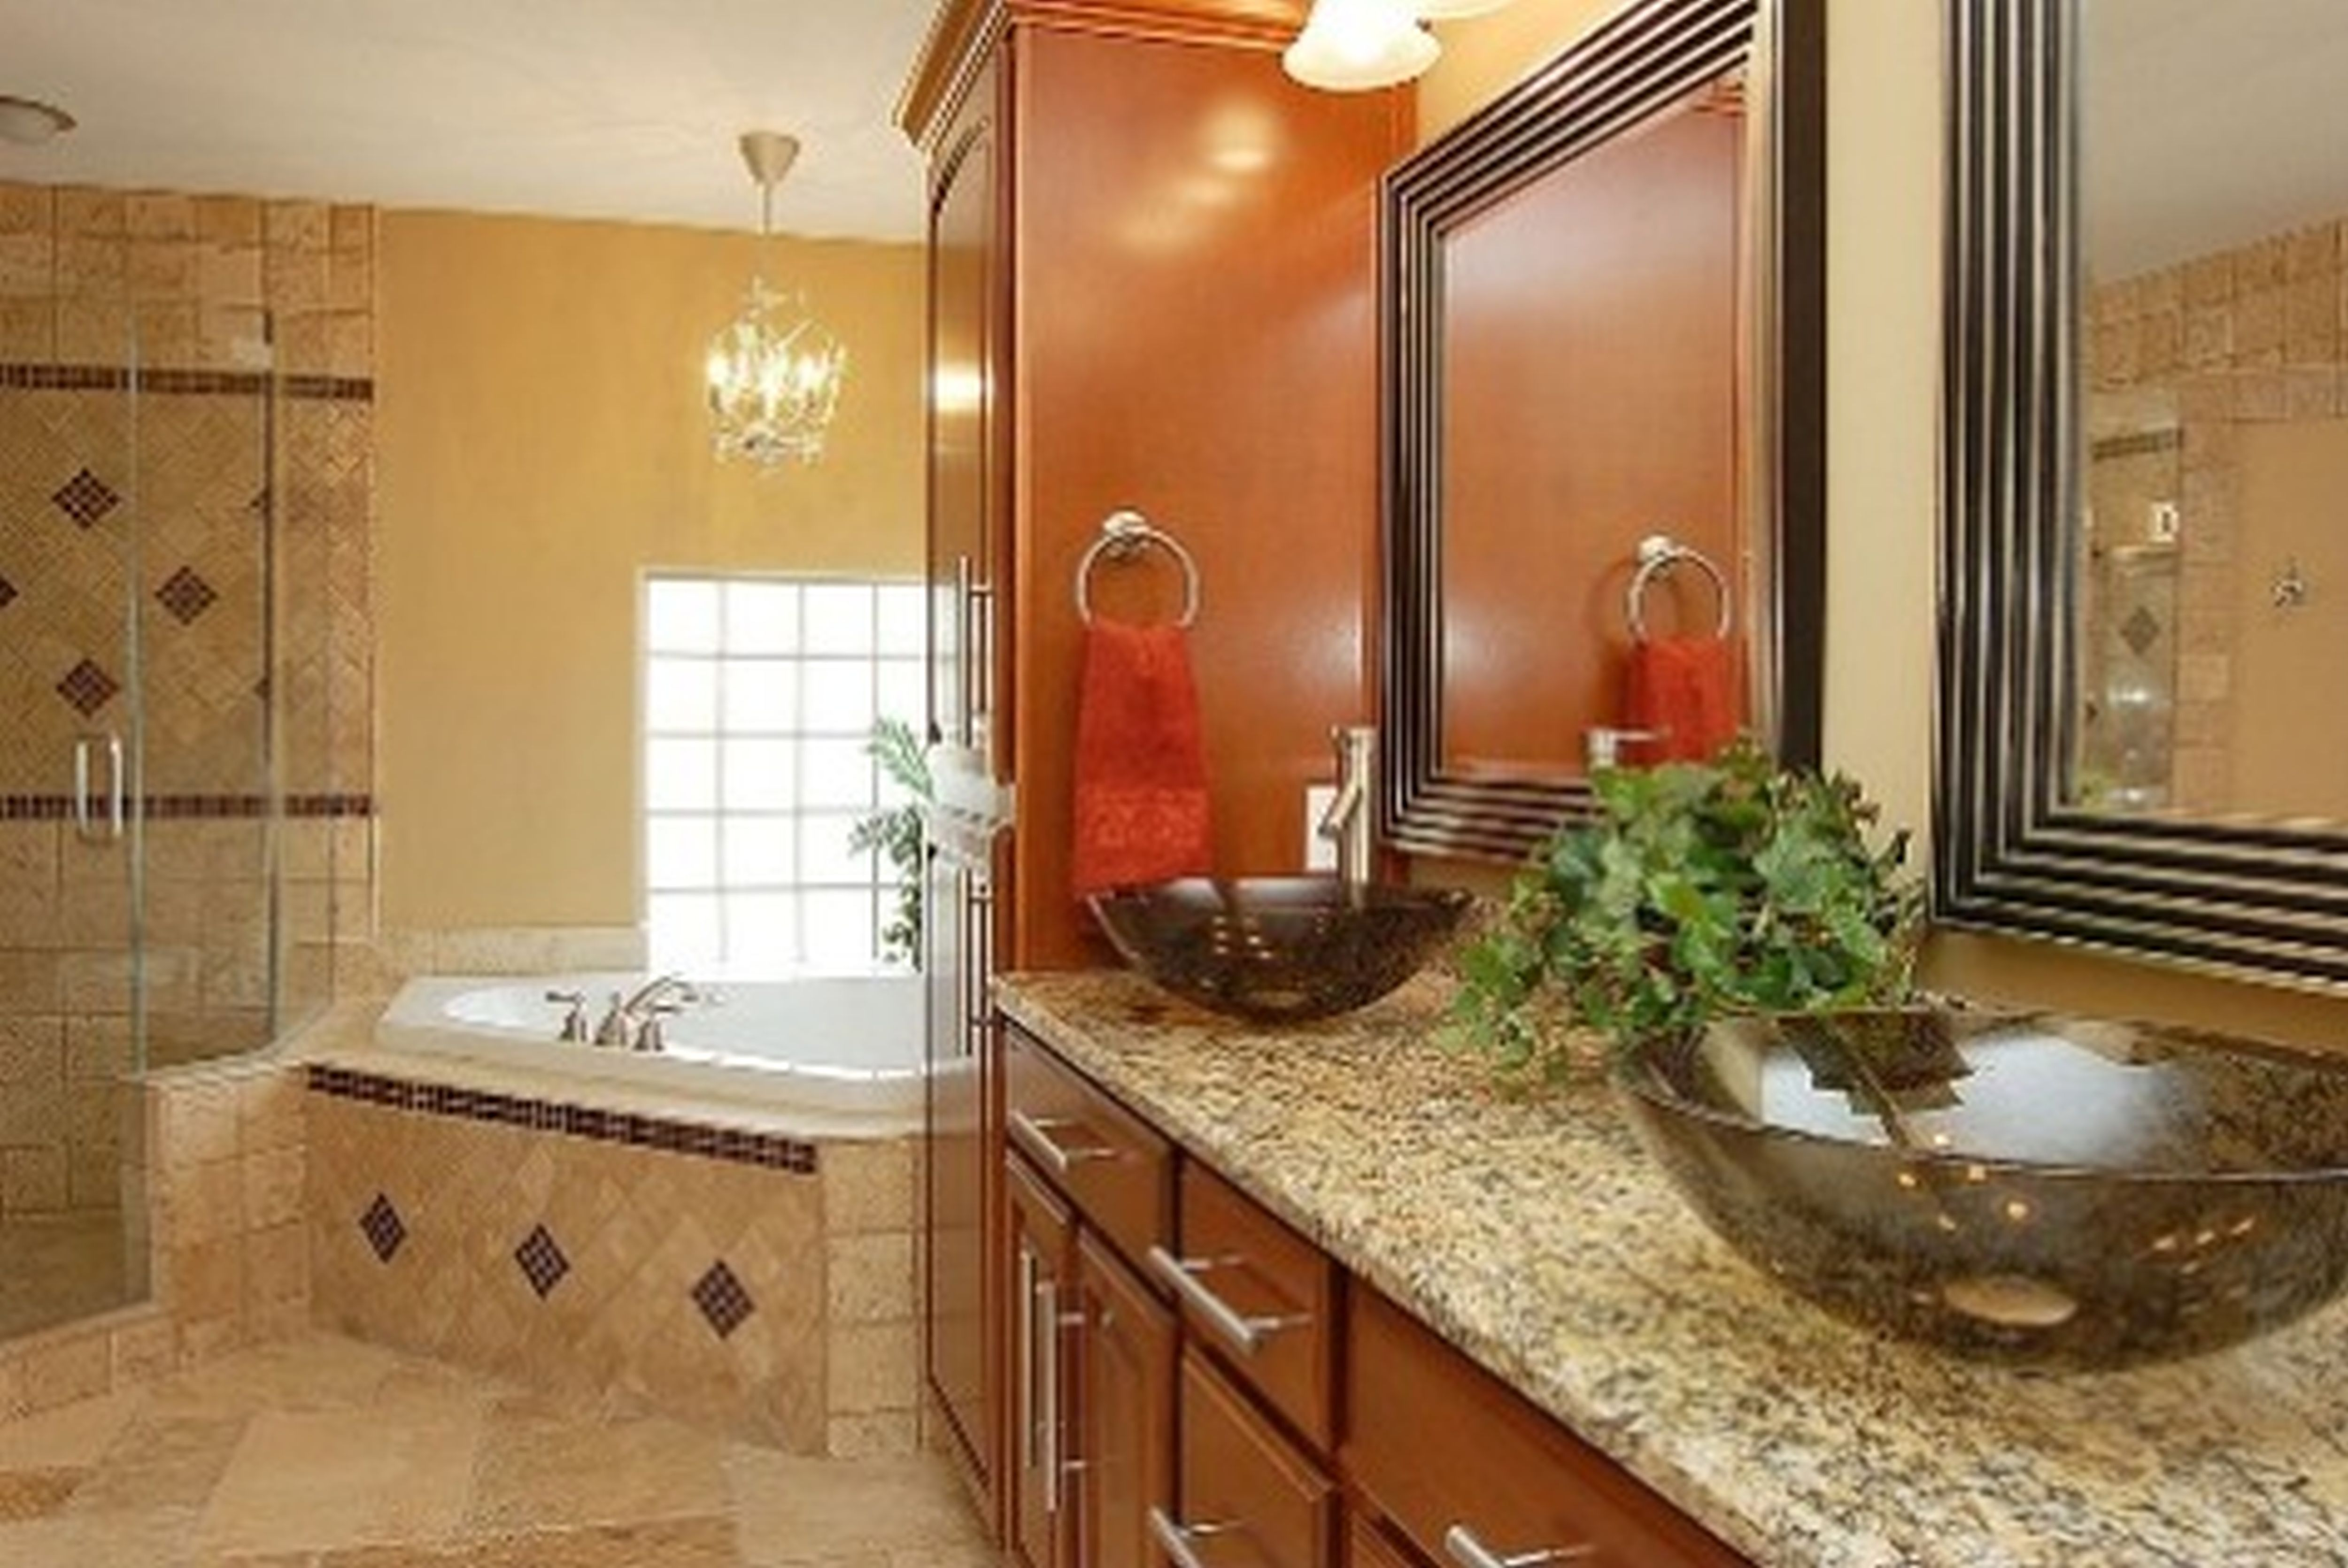 Innovative-Bathroom-Decorating-Ideas-3-Beauteous-Decoration-Inspiration-Scenic-cookie-decorating-ideas-Tropical-Style